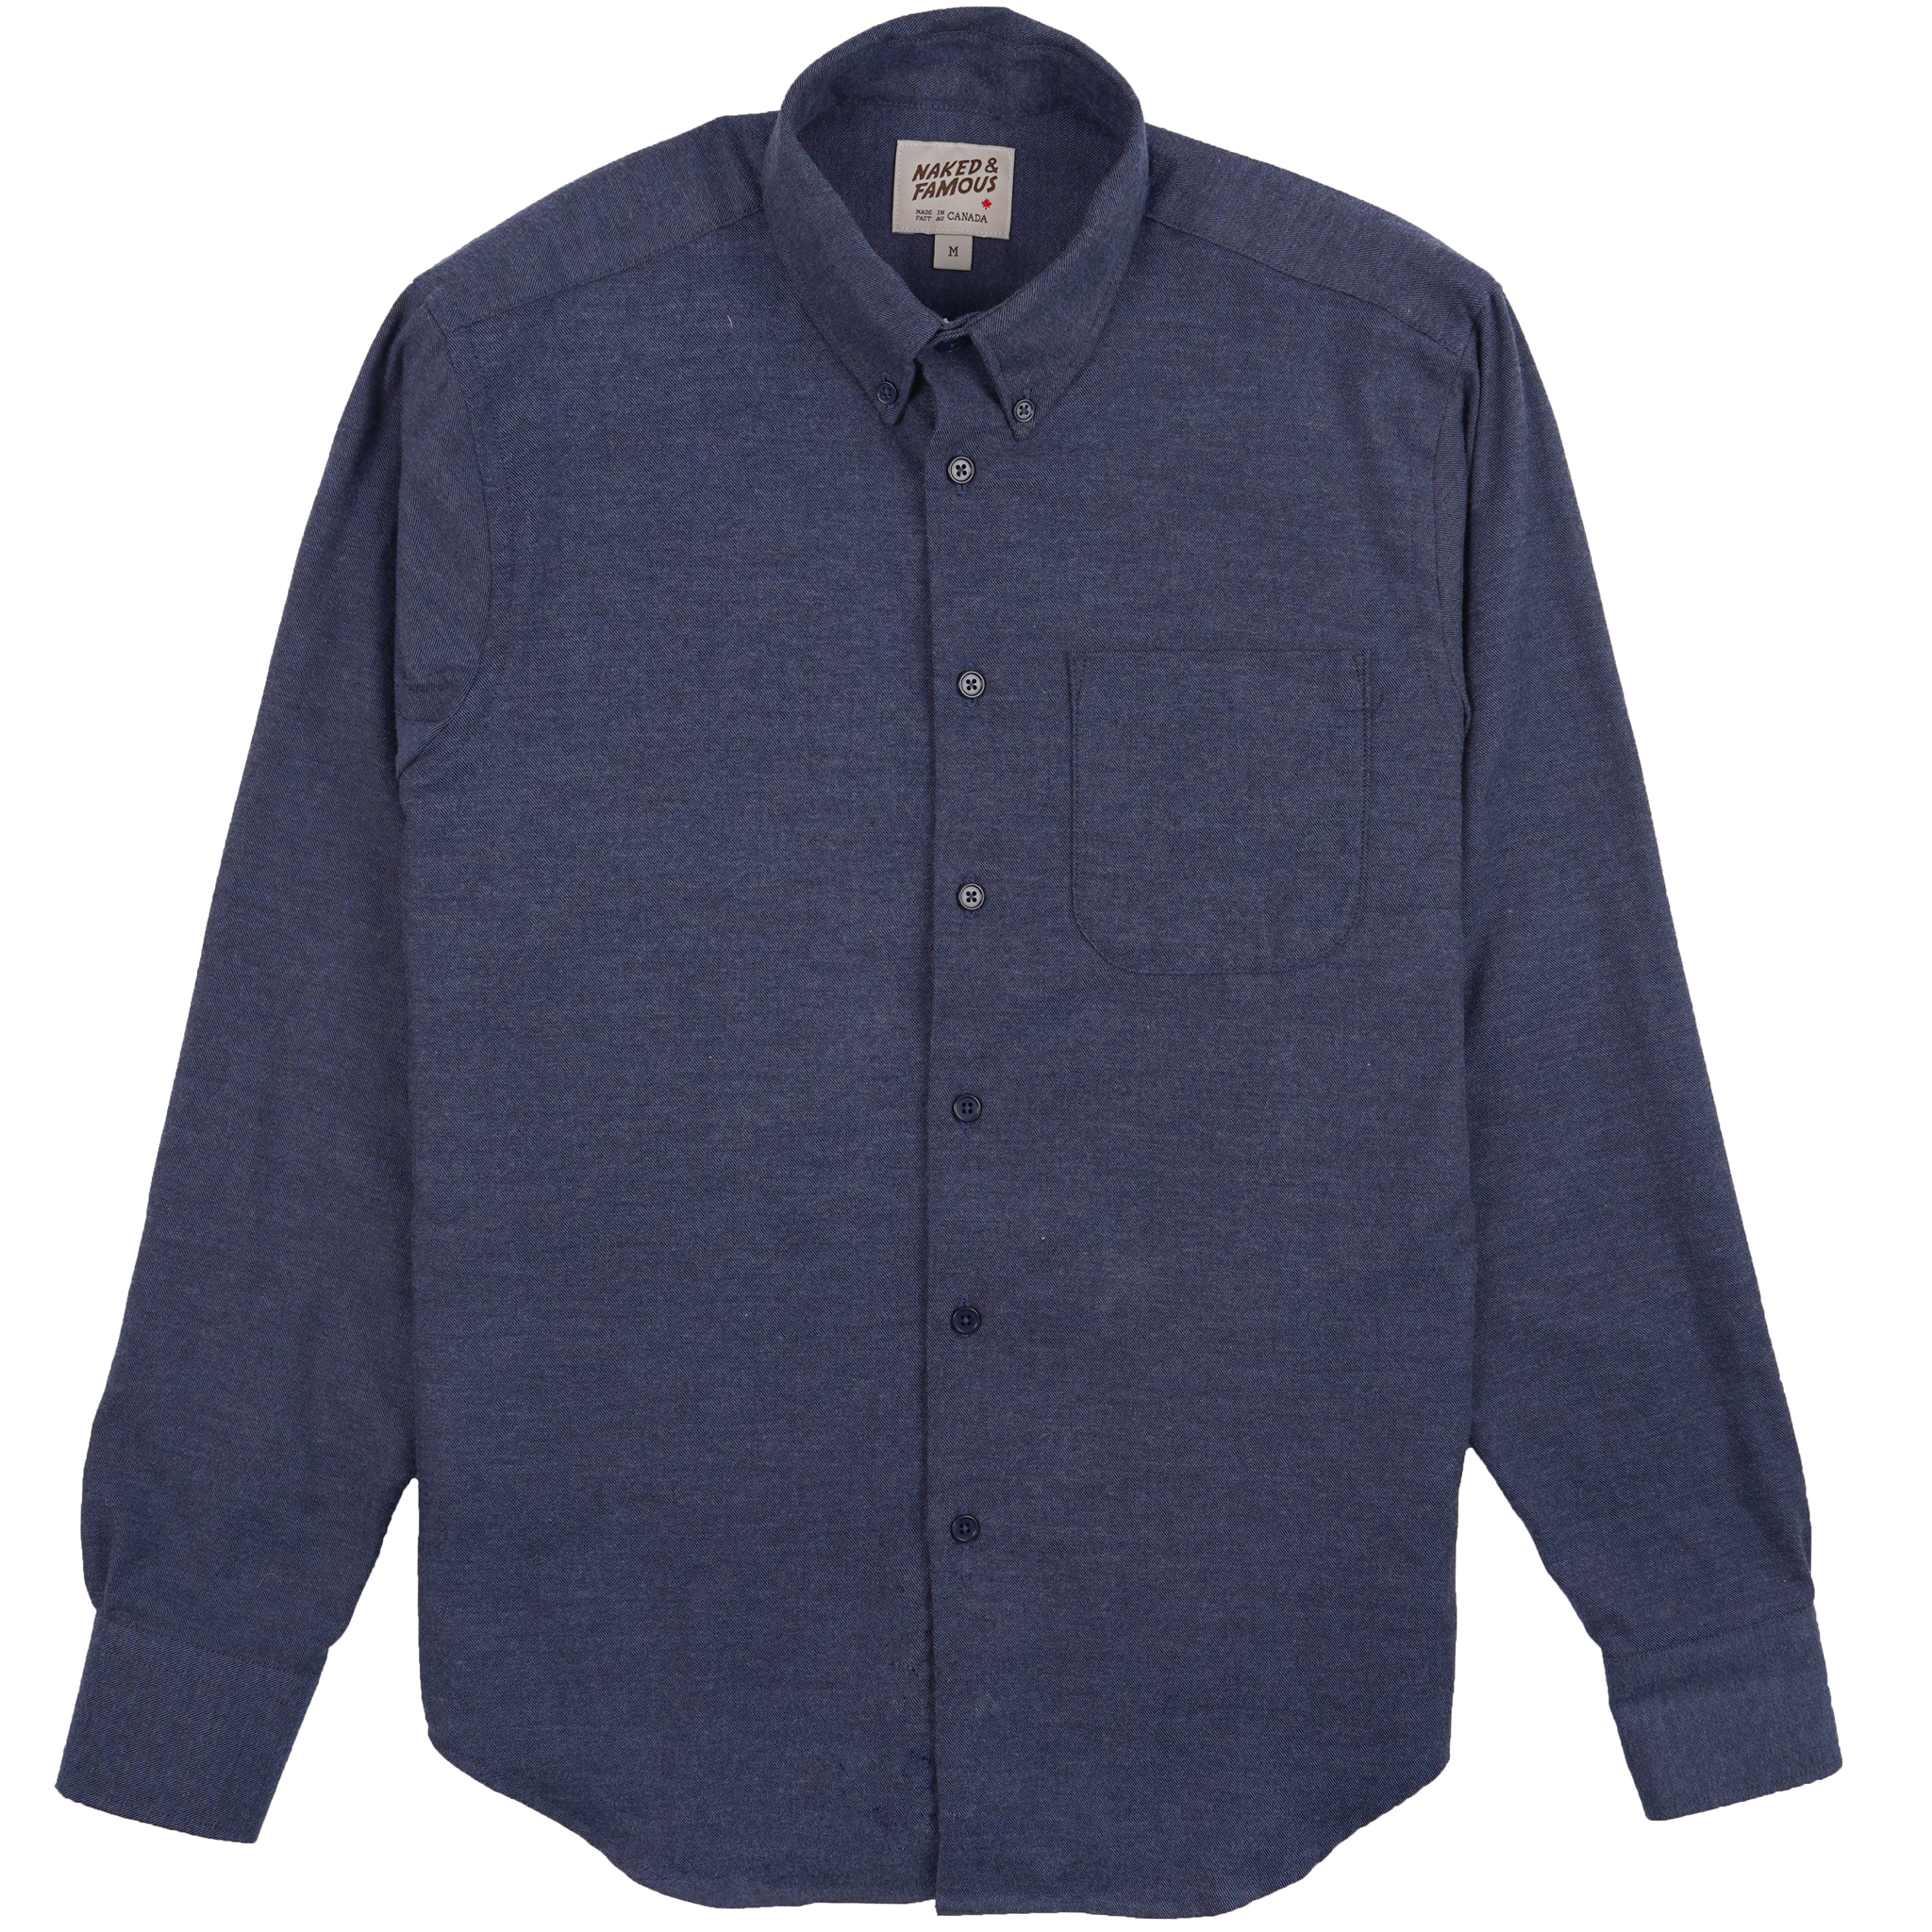 CLassic Flannel - Blue - Easy Shirt